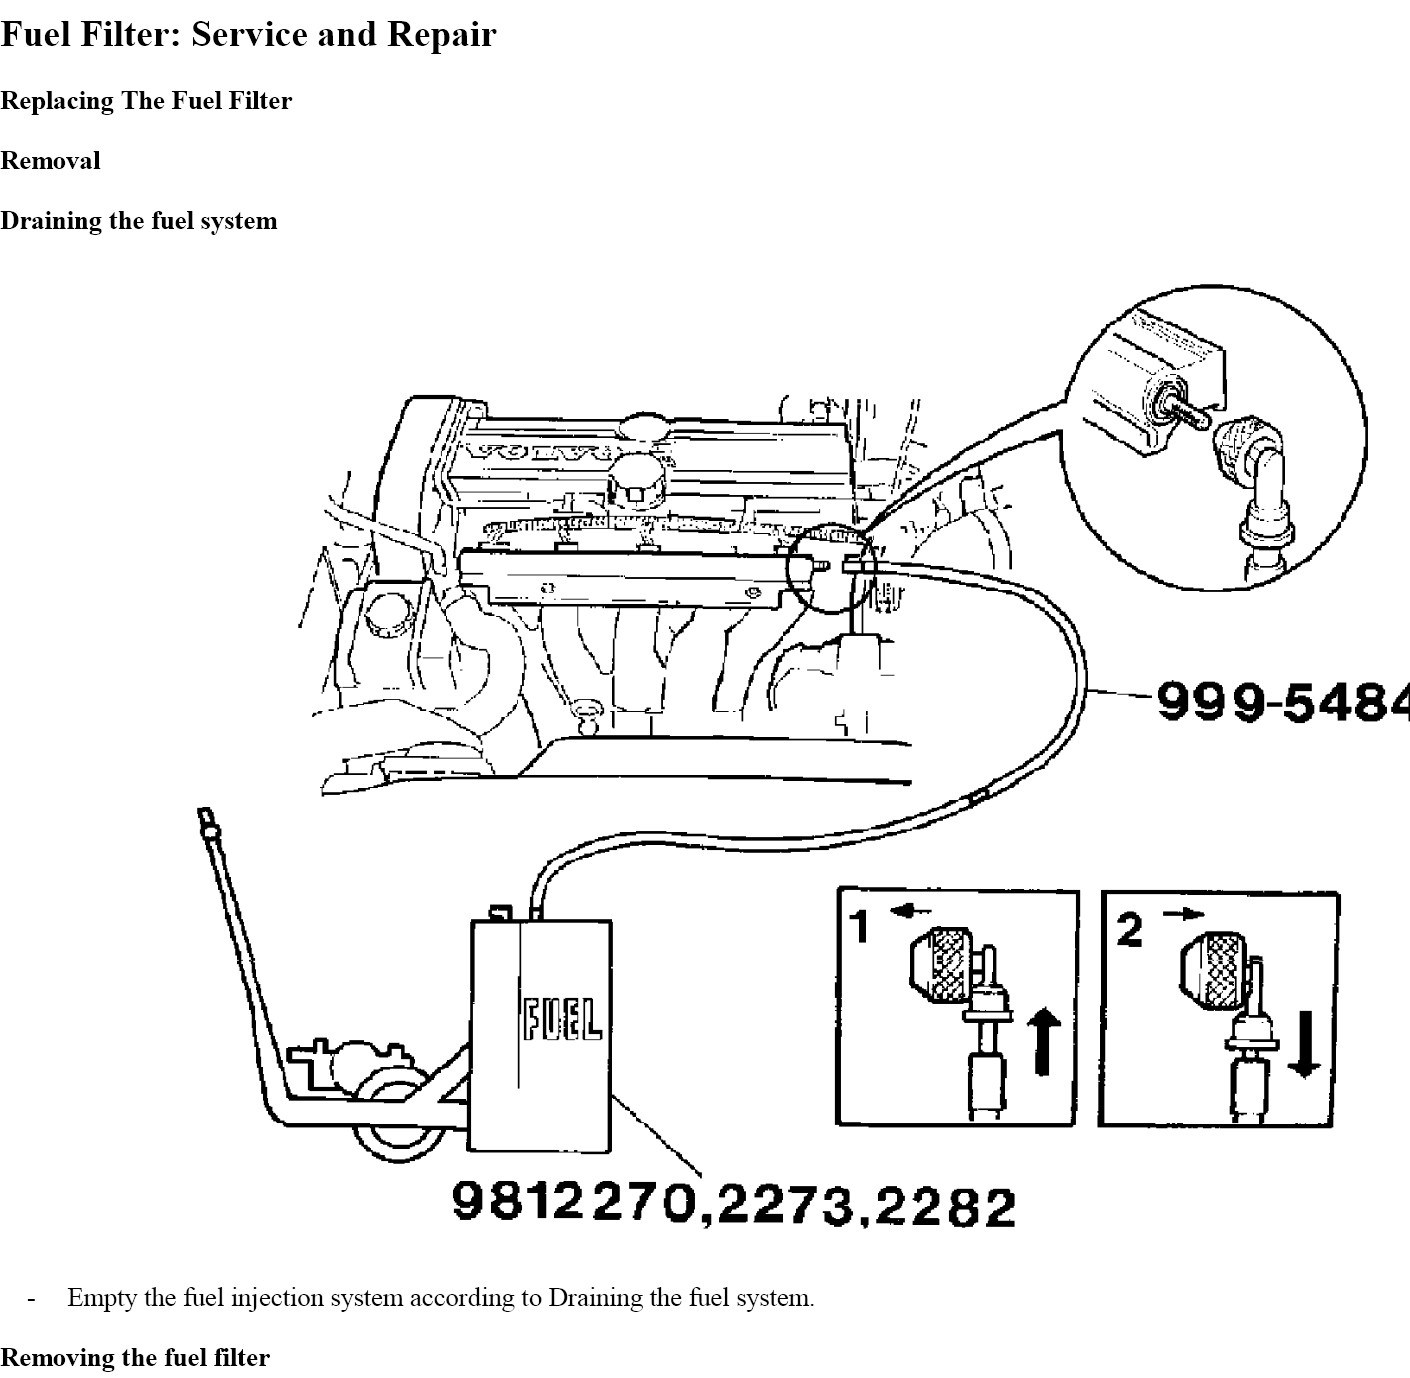 where would the fuel filter in a 2001 chevy prism be